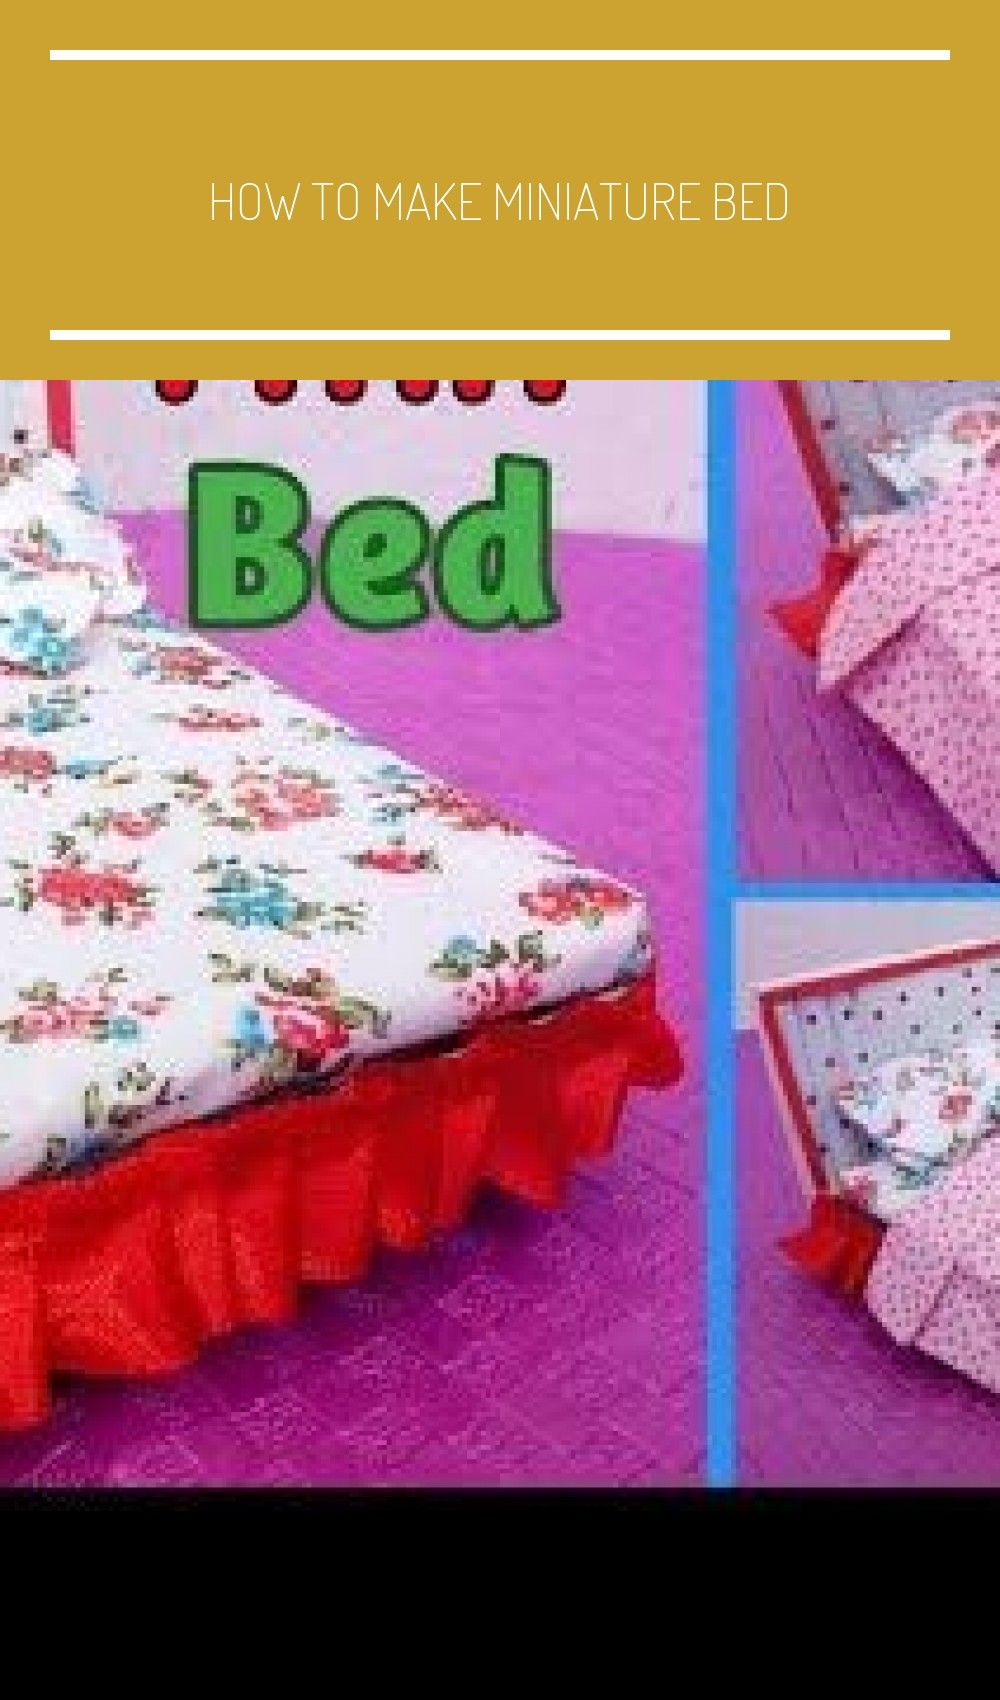 How To Make Miniature Bed For Dolls Miniature Craft How To Make Miniature Bed For Indian Dolls E.O.C - YouTube #indianbeddoll How To Make Miniature Bed For Dolls Miniature Craft How To Make Miniature Bed For Indian Dolls E.O.C - YouTube #how to make indian Dolls #indianbeddoll